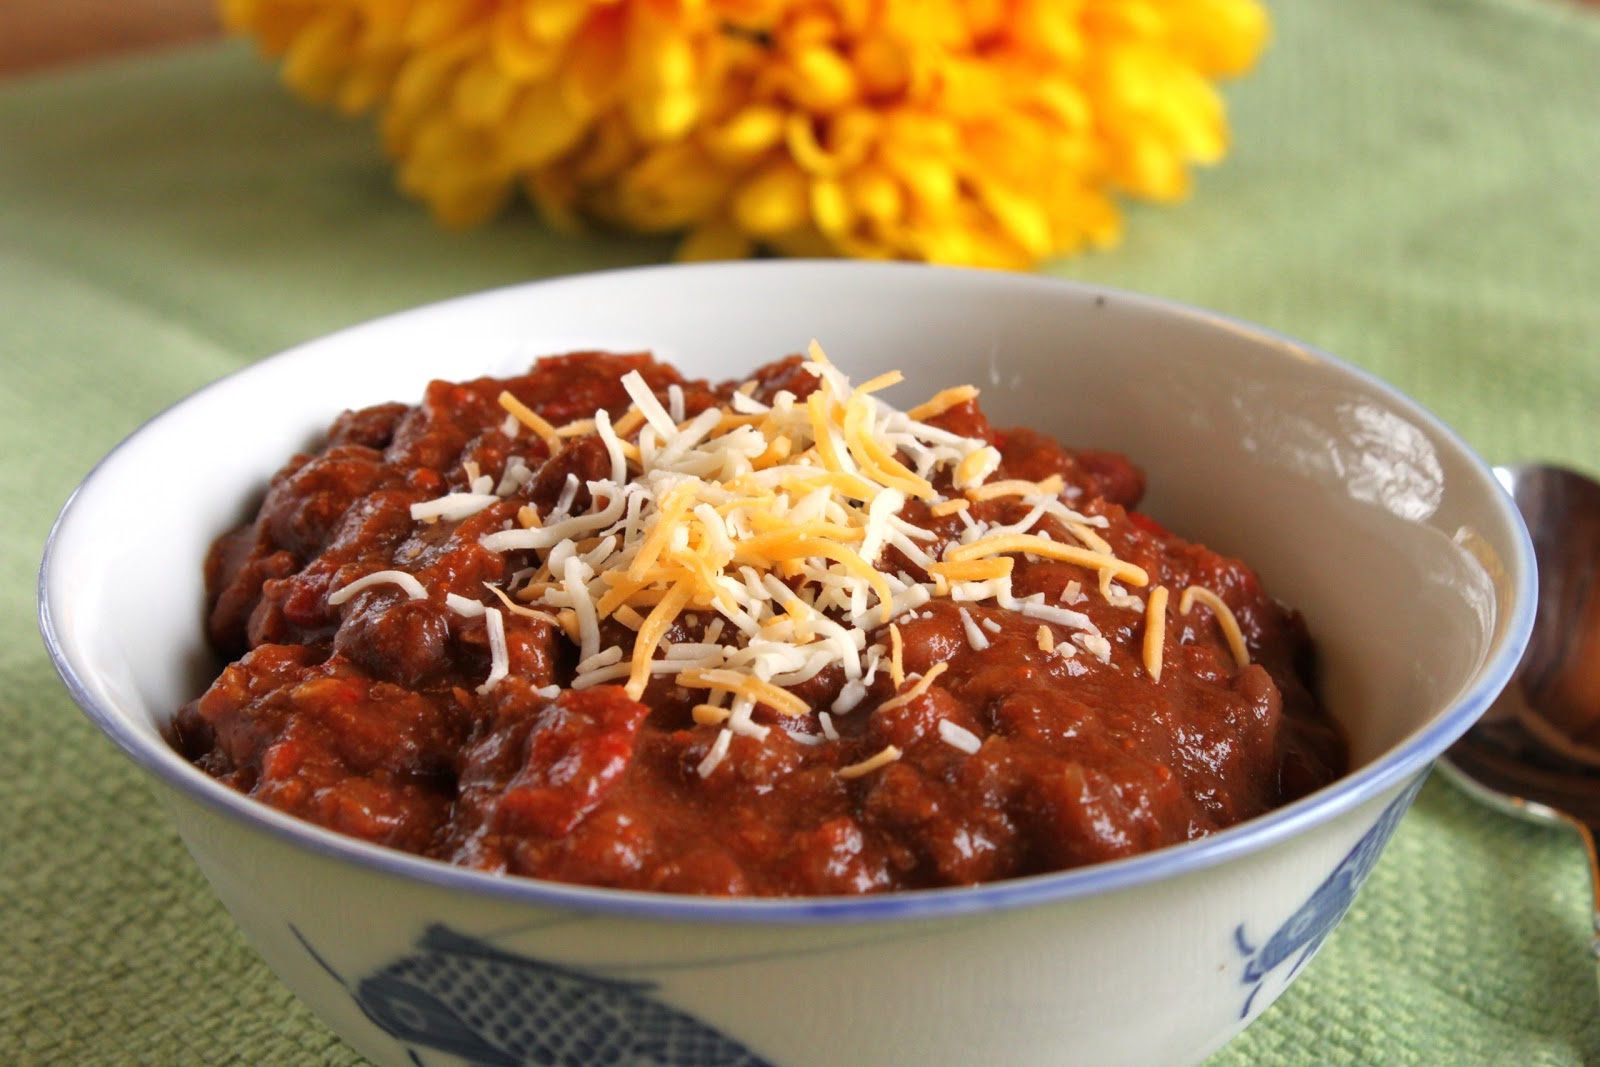 classic chili recipes that are easy to make